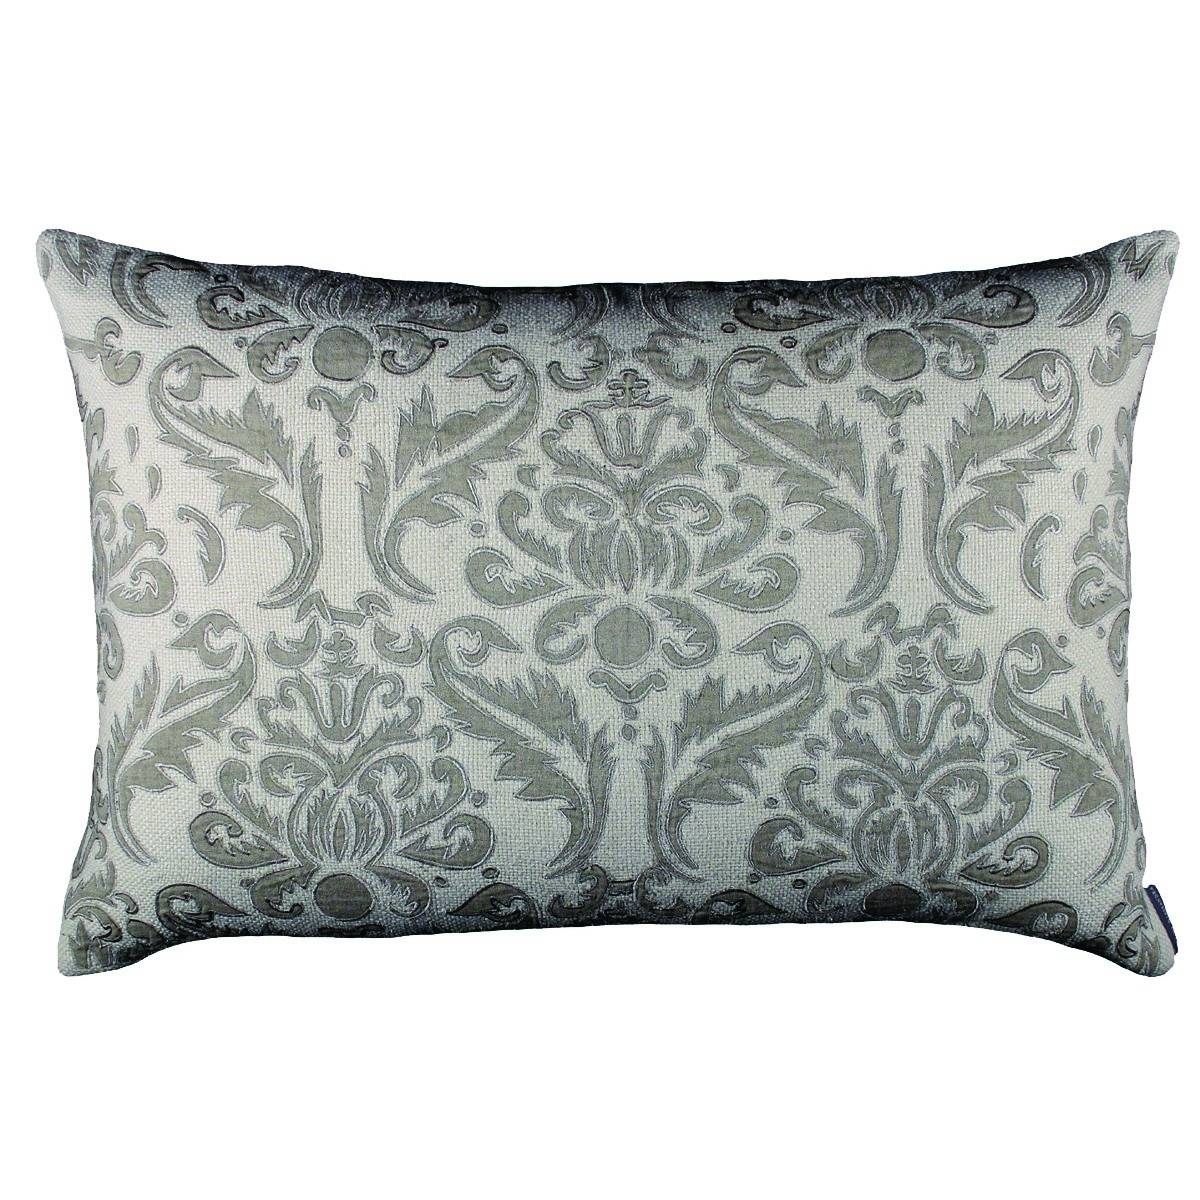 Uuu Lili Alessandra Appliqued Pillows In Basketweave With